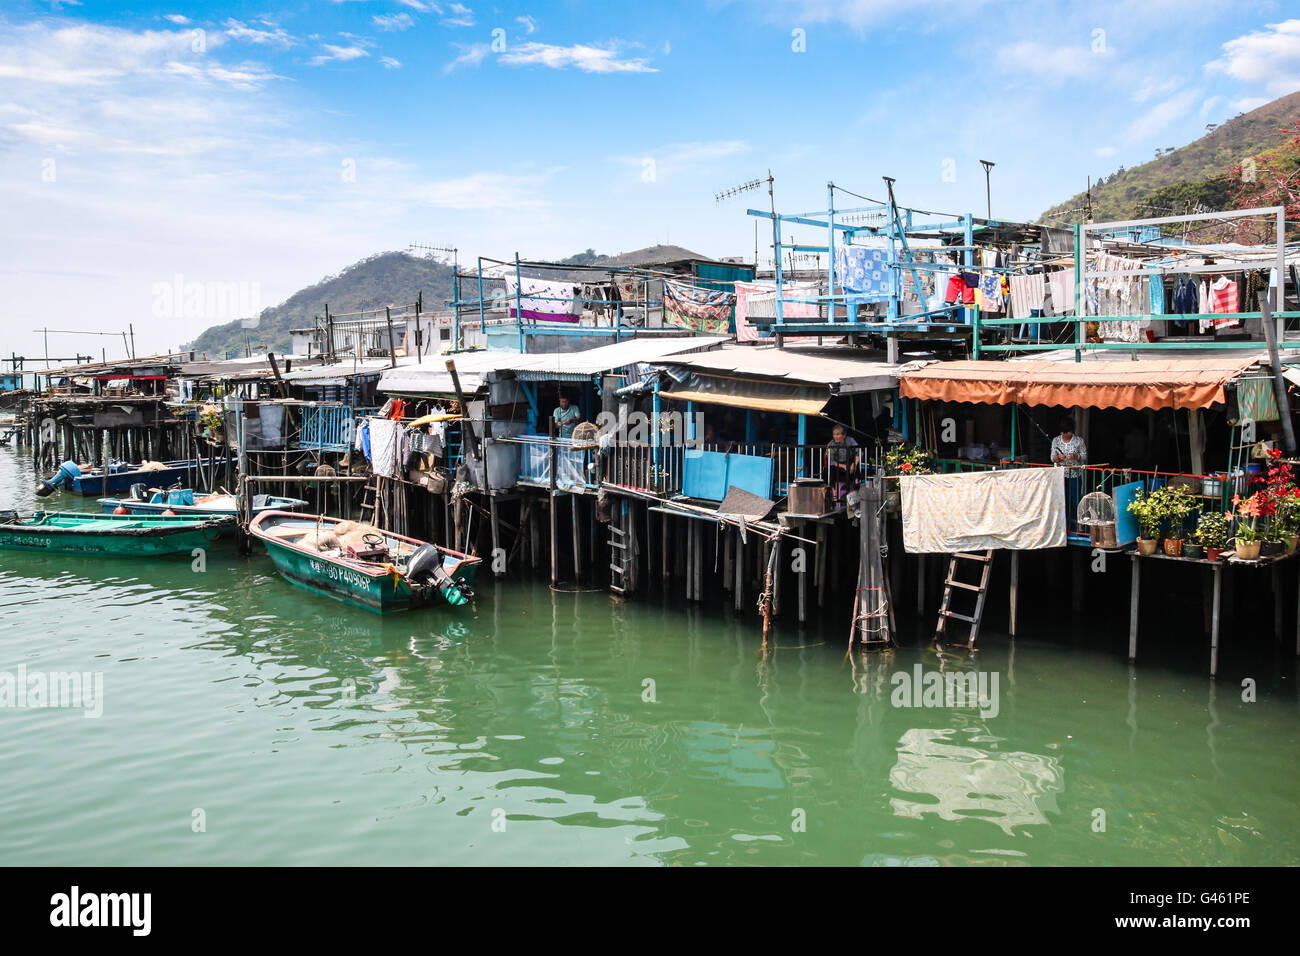 Hong Kong - April 10, 2011: Houses on stilts above the tidal flats of Lantau Island are homes to the Tanka people - Stock Image